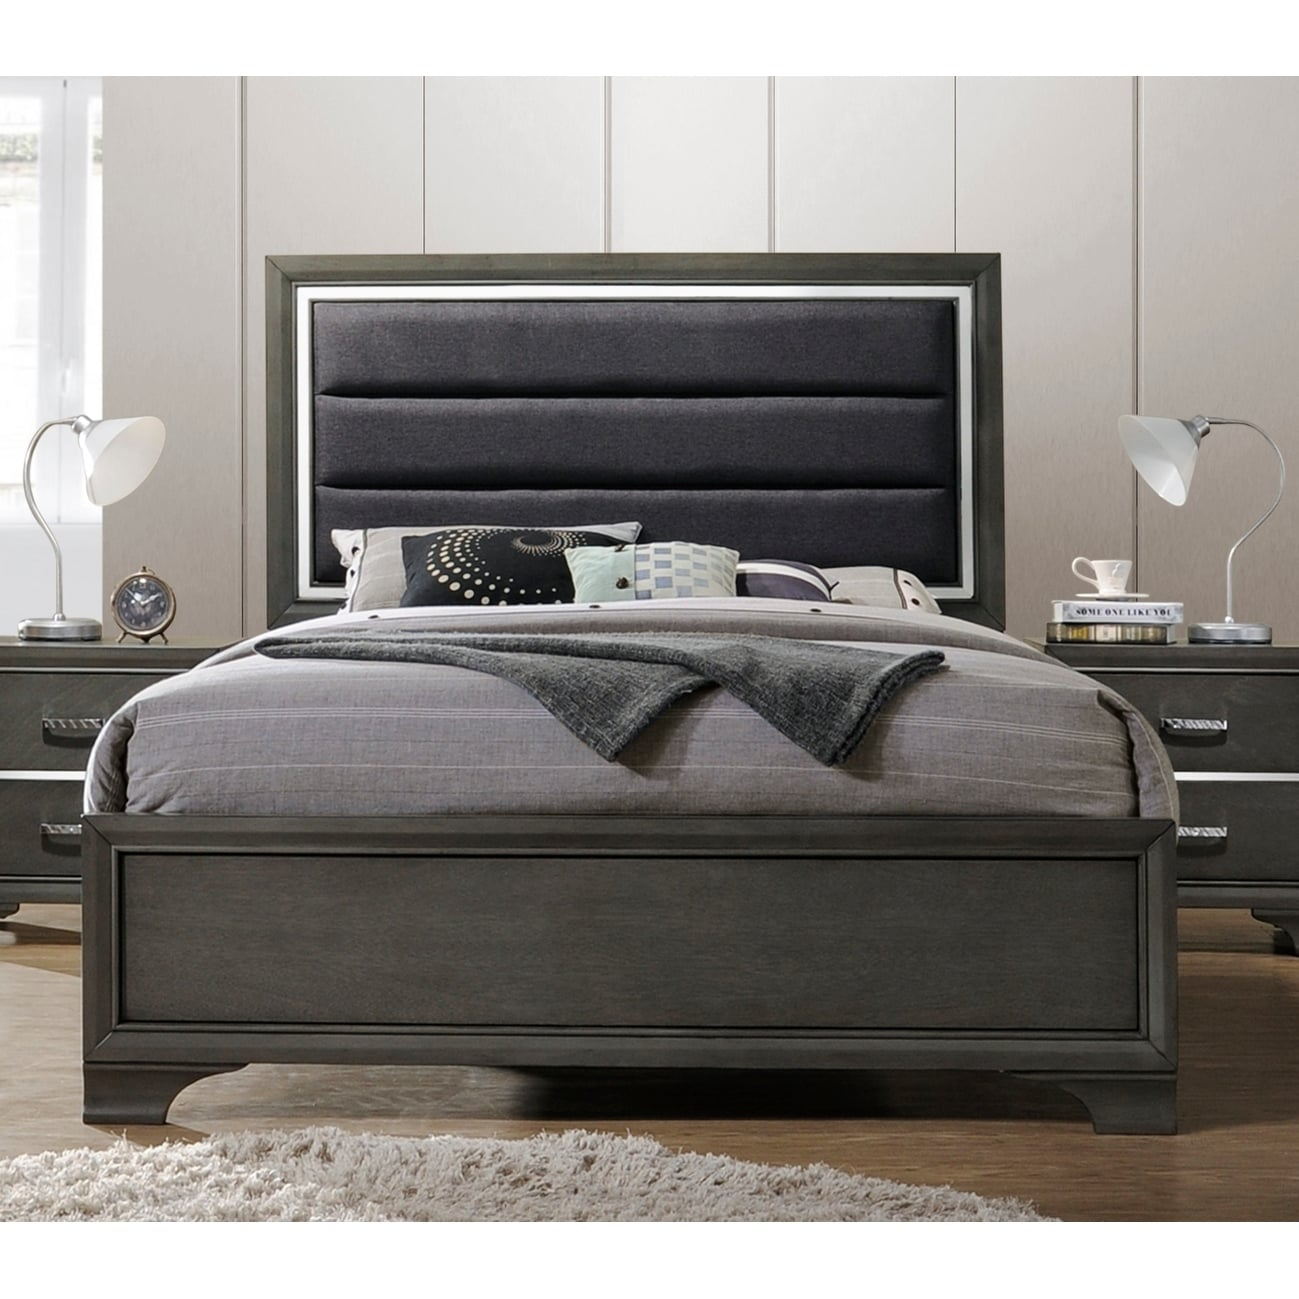 Wooden Beds Queen Size Wooden Beds Gray Faux Leather